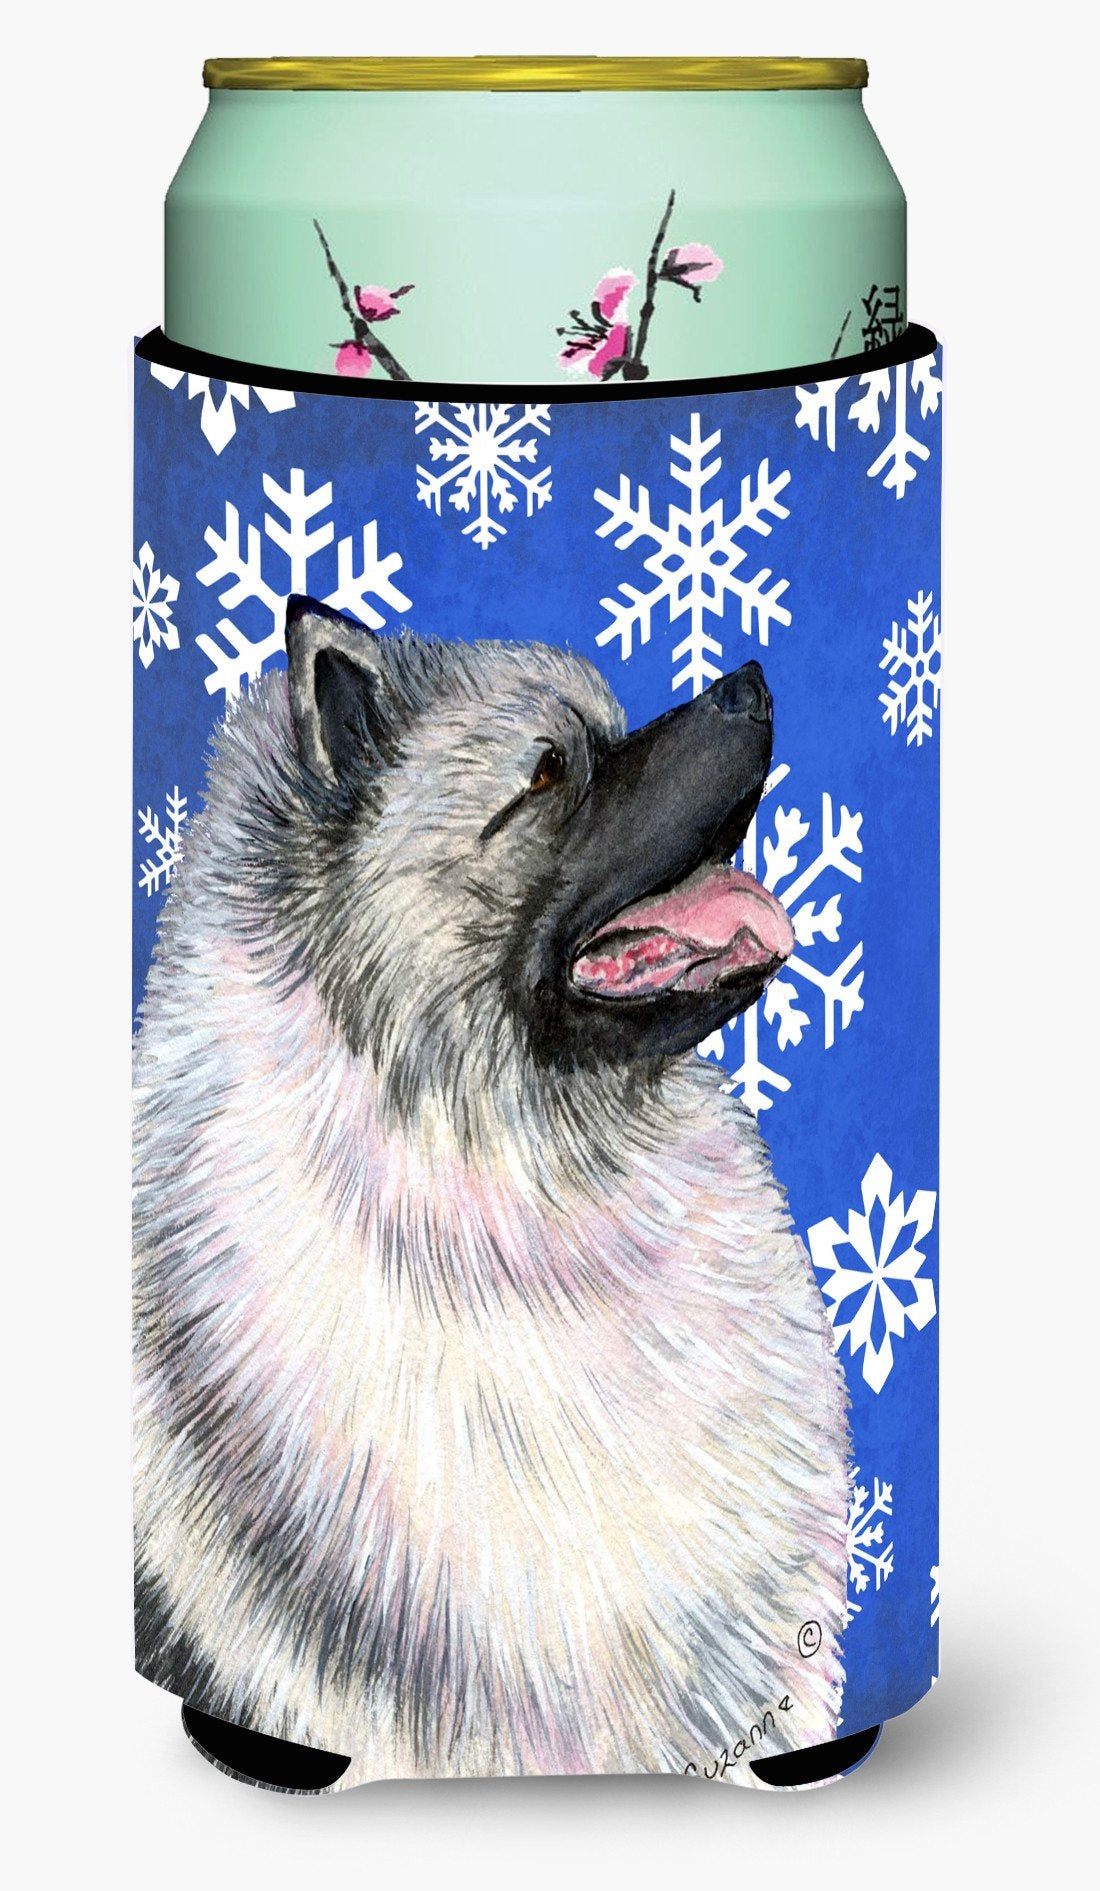 Keeshond Winter Snowflakes Holiday  Tall Boy Beverage Insulator Beverage Insulator Hugger by Caroline's Treasures